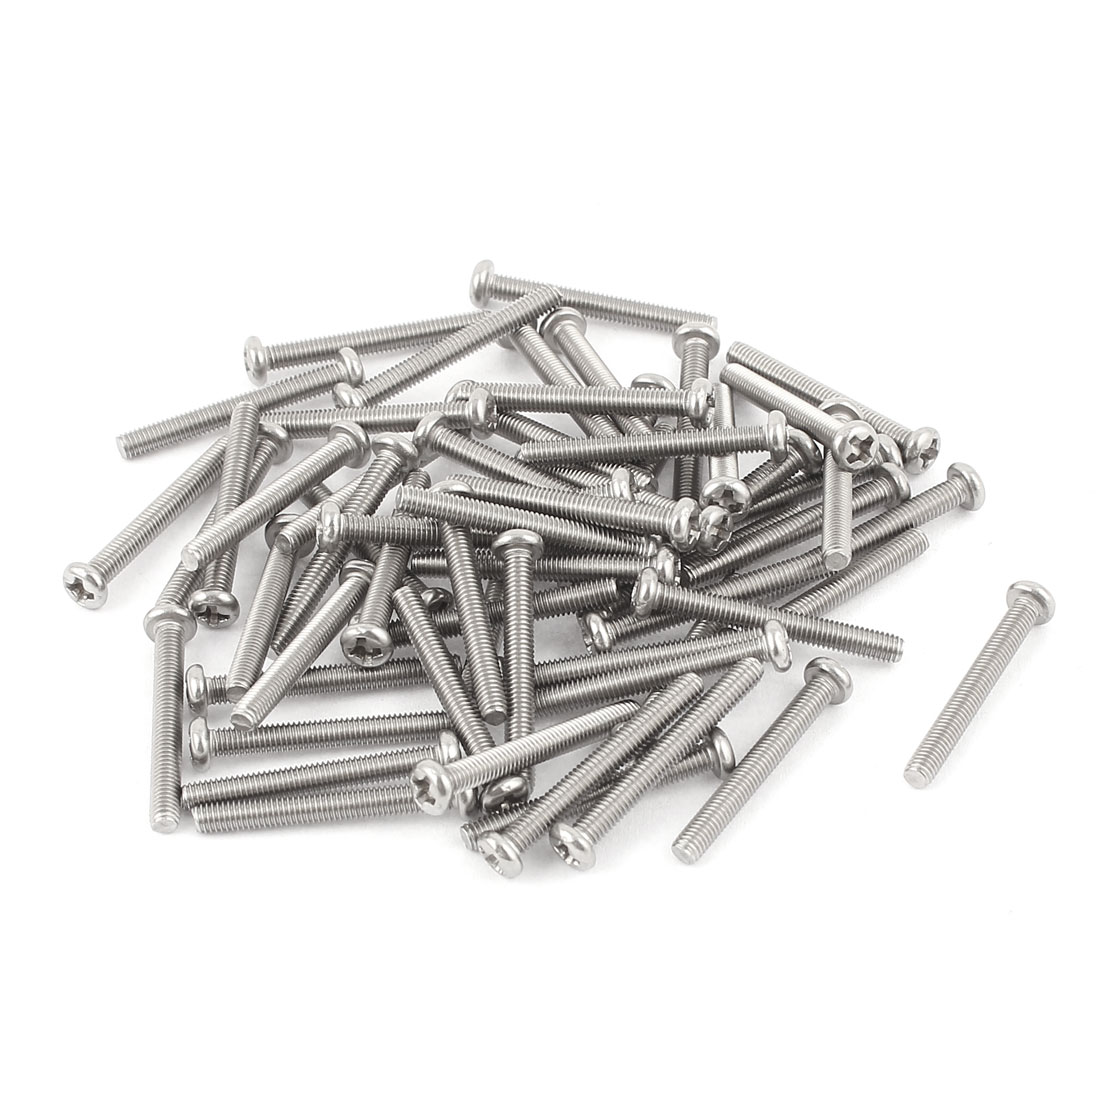 M3 x 25mm 304 Stainless Steel Crosshead Phillips Pan Head Screws Bolt 60pcs